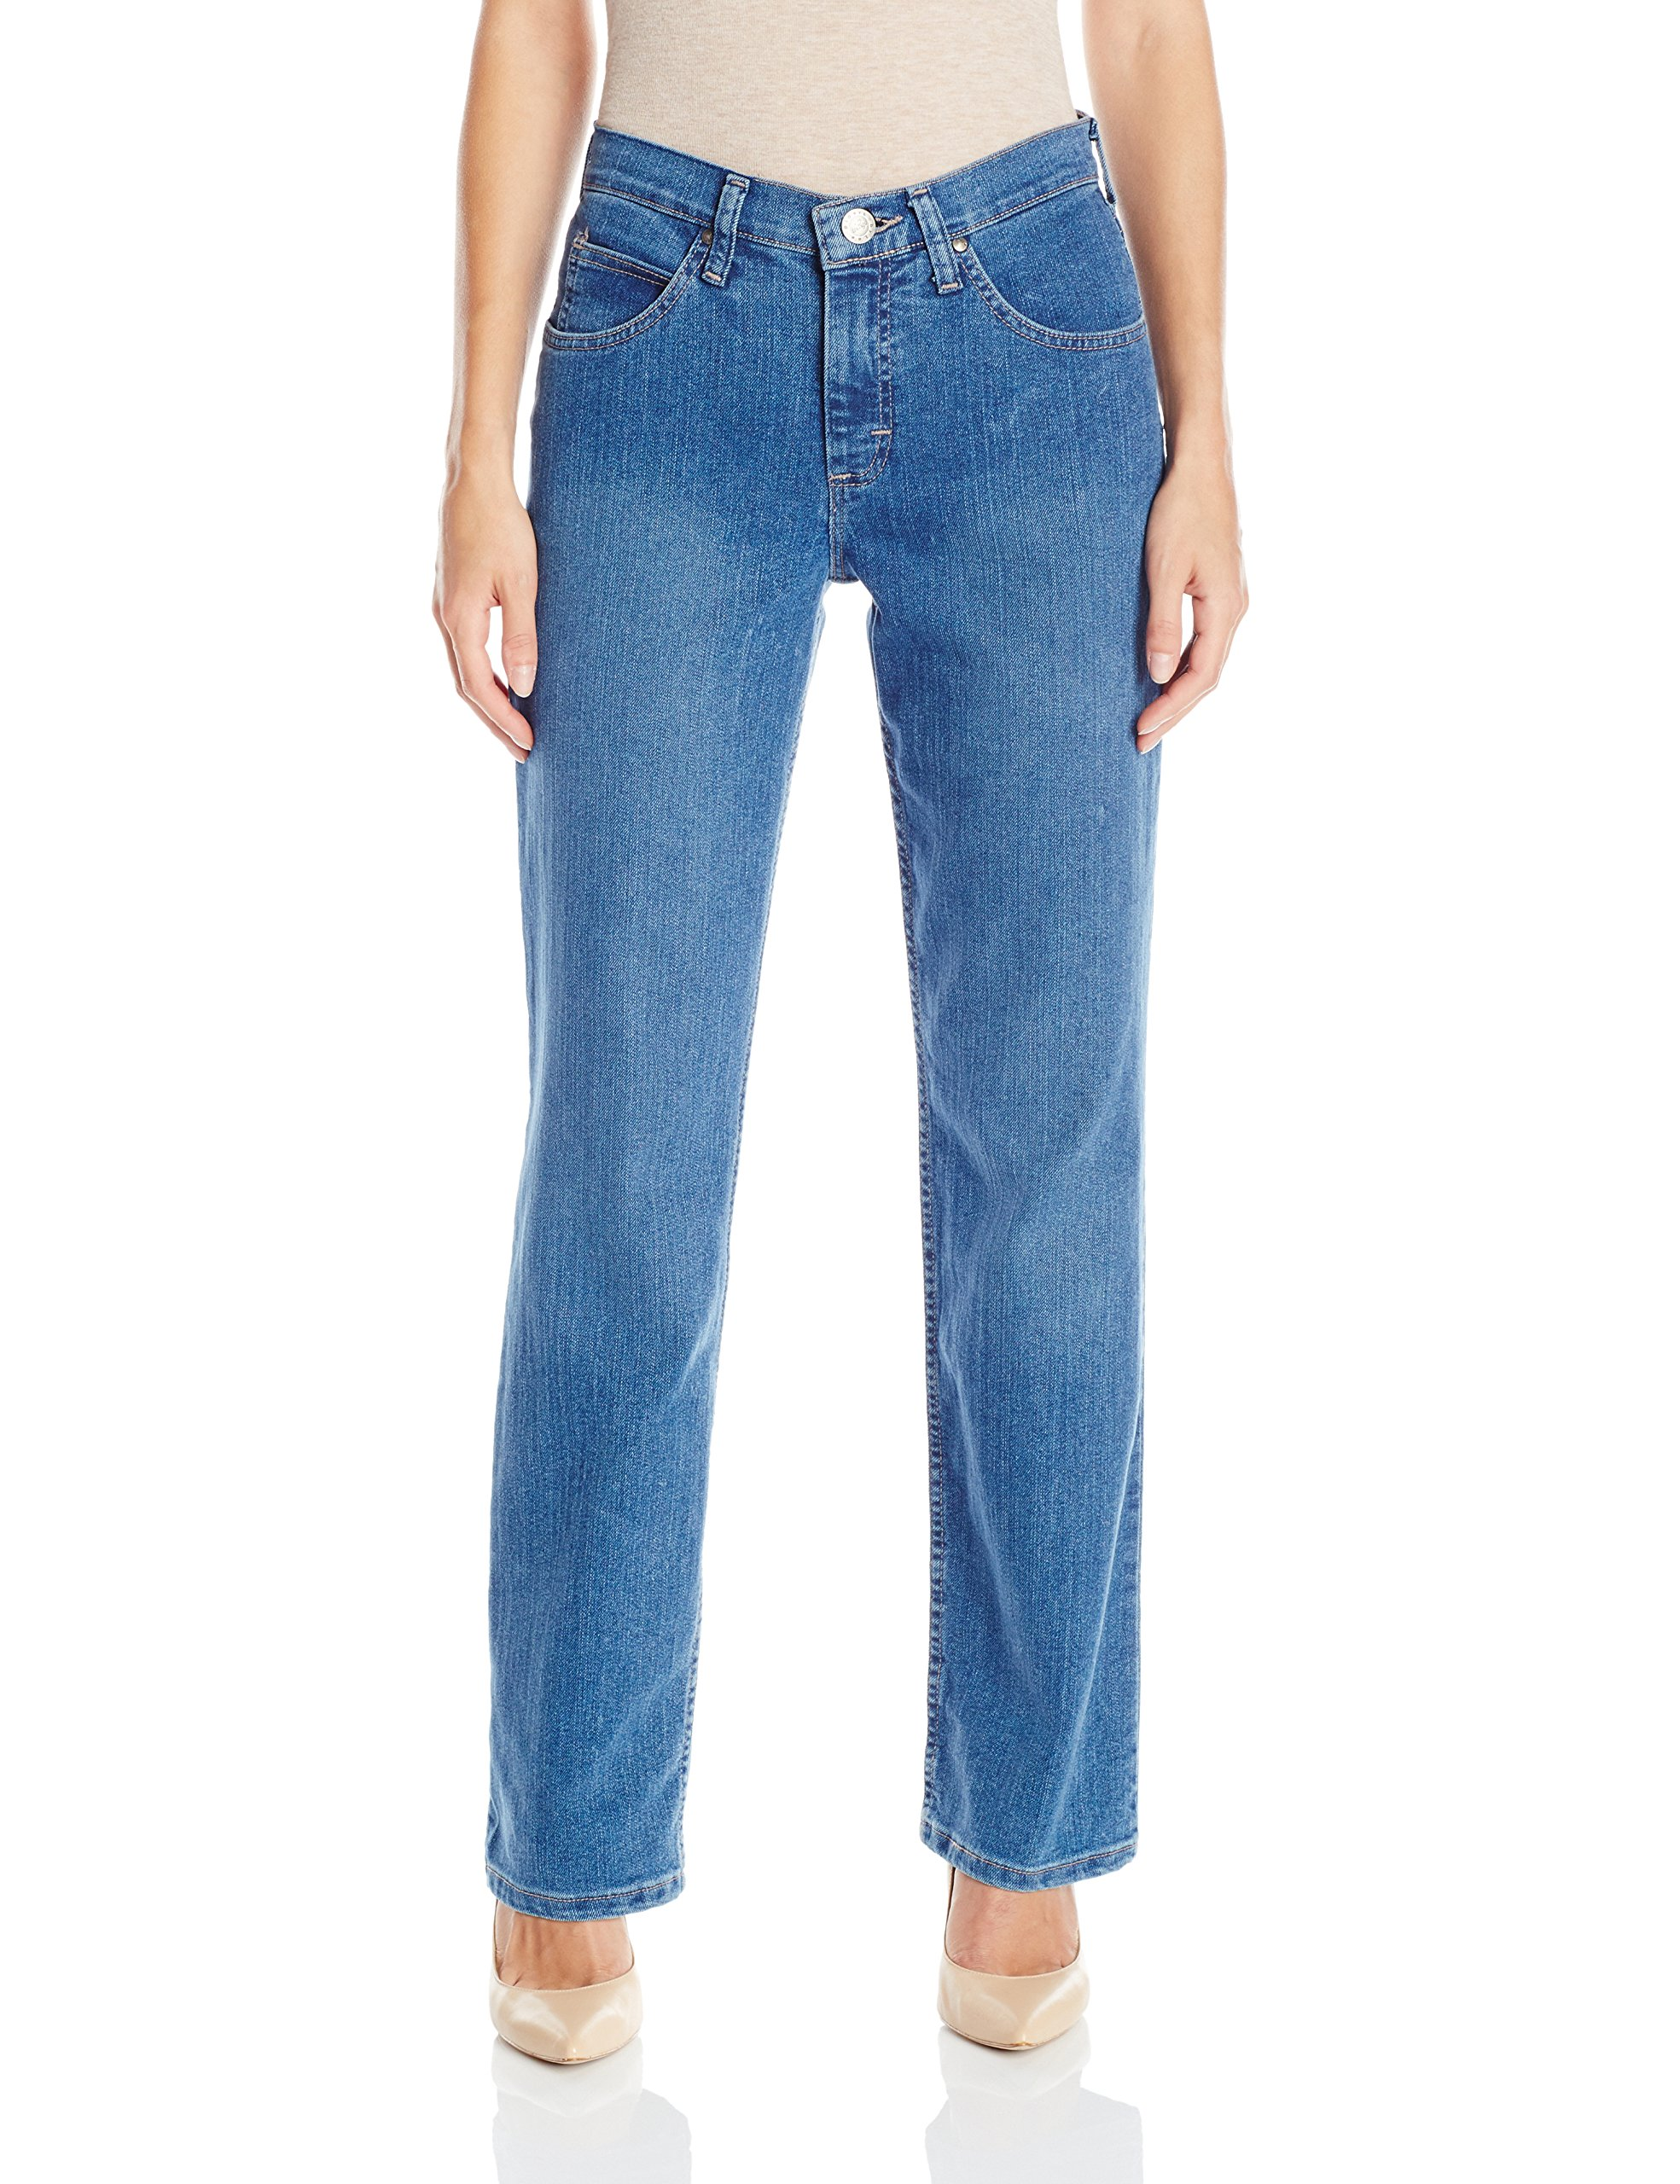 Riders by Lee Indigo Women's Classic-Fit Straight-Leg Jean, Light, 14 by Riders by Lee Indigo (Image #1)